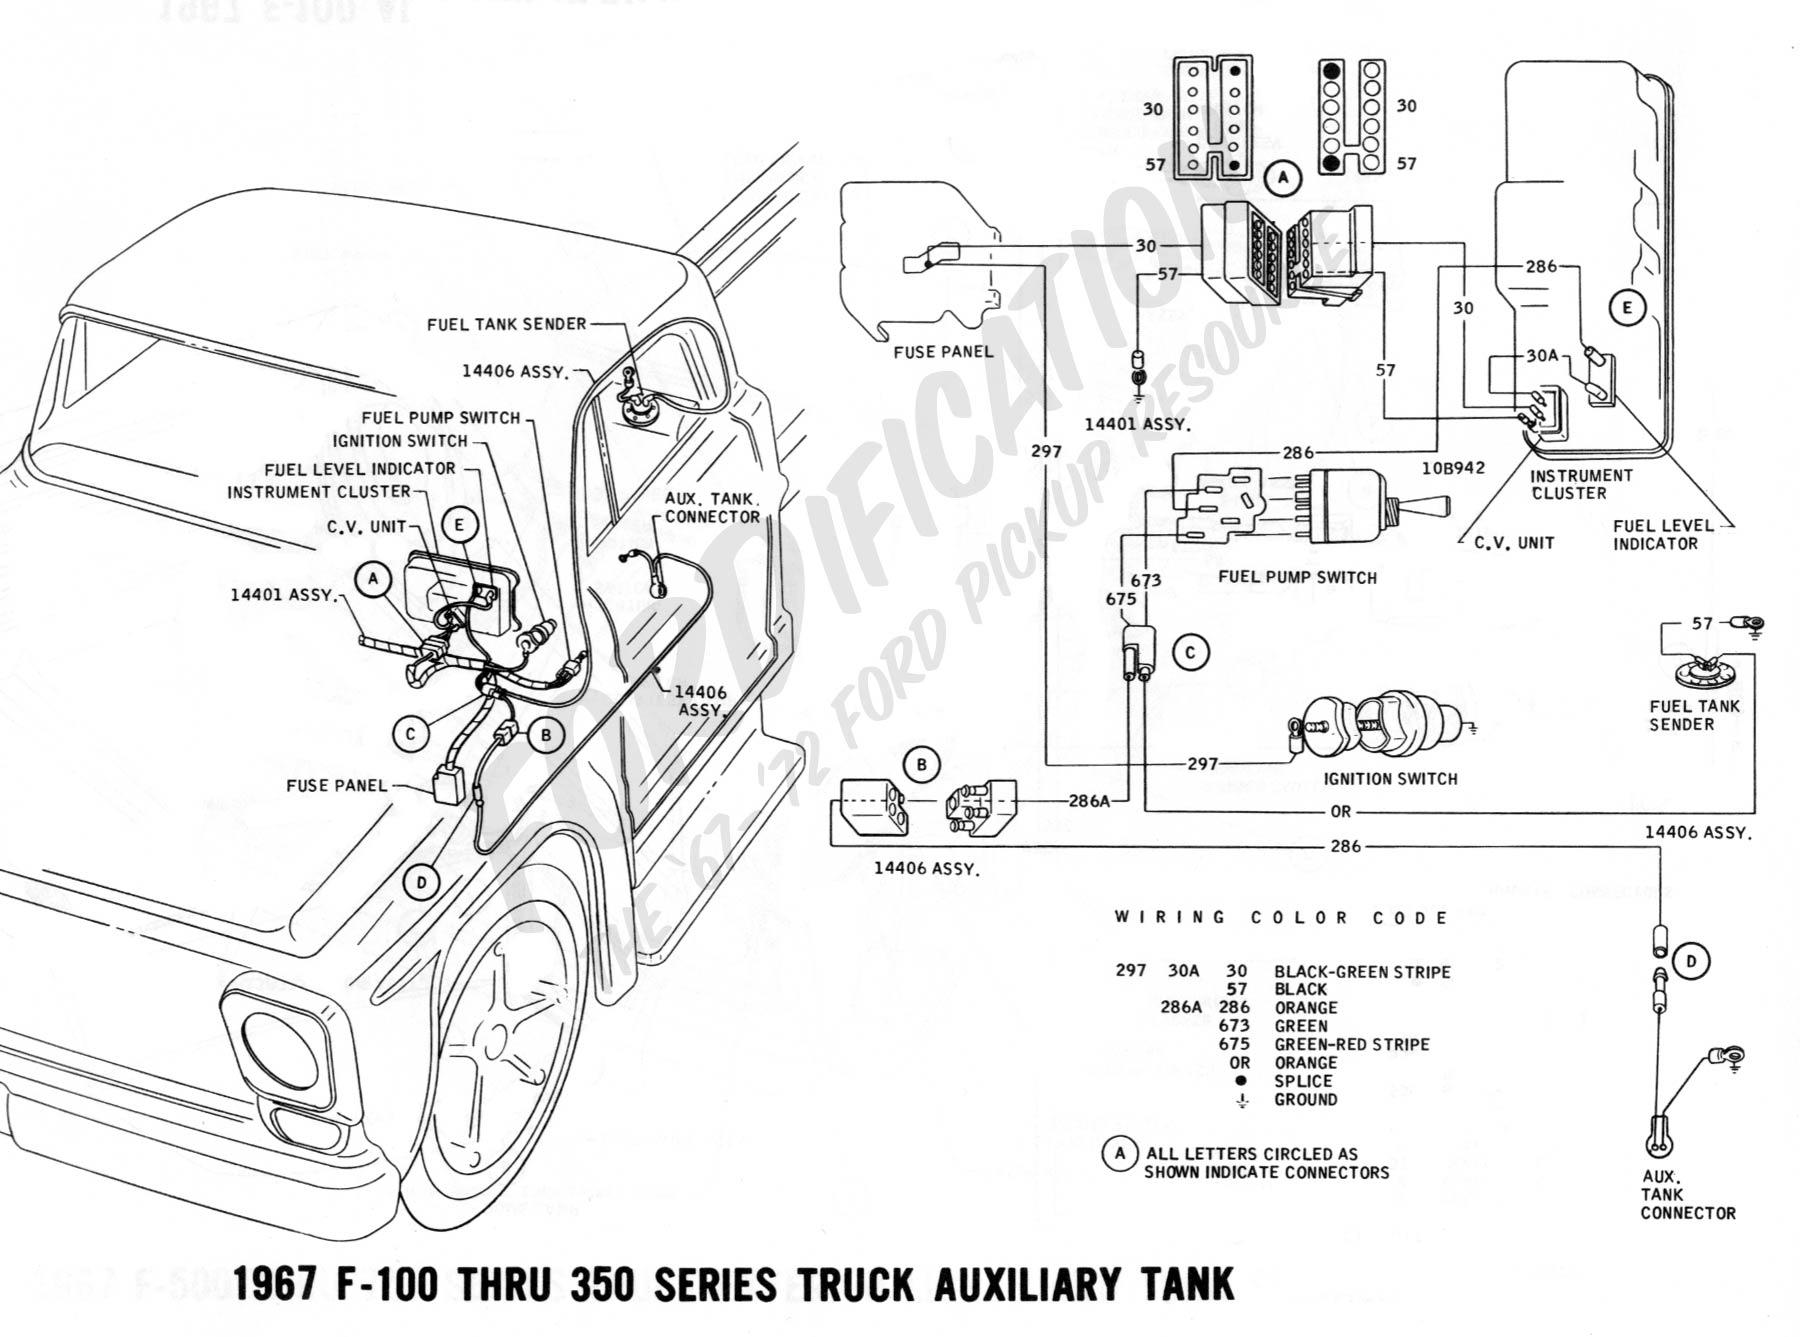 1966 ford pinto wiring diagram  1966  free engine image